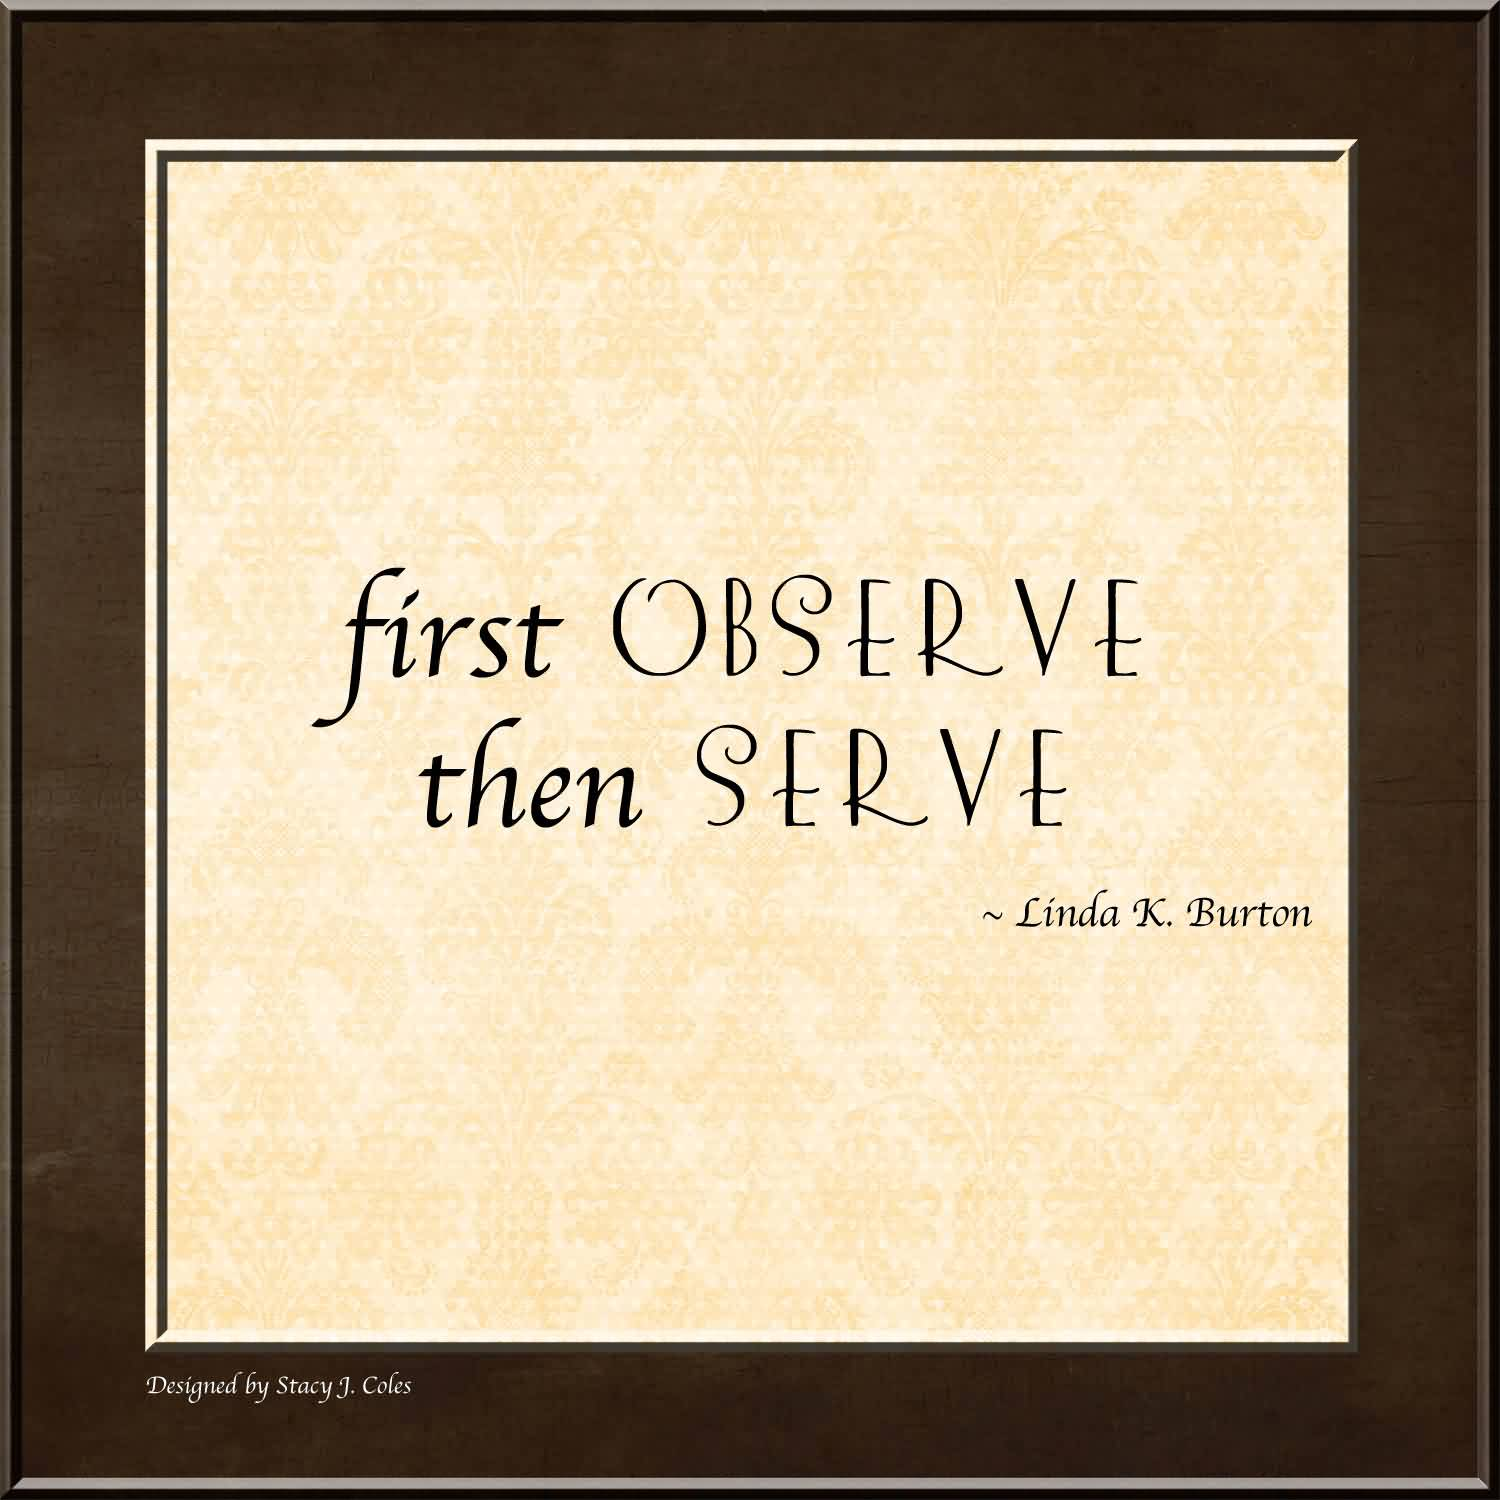 Church Quote By Linda K. Burton~ First Observe then serve.